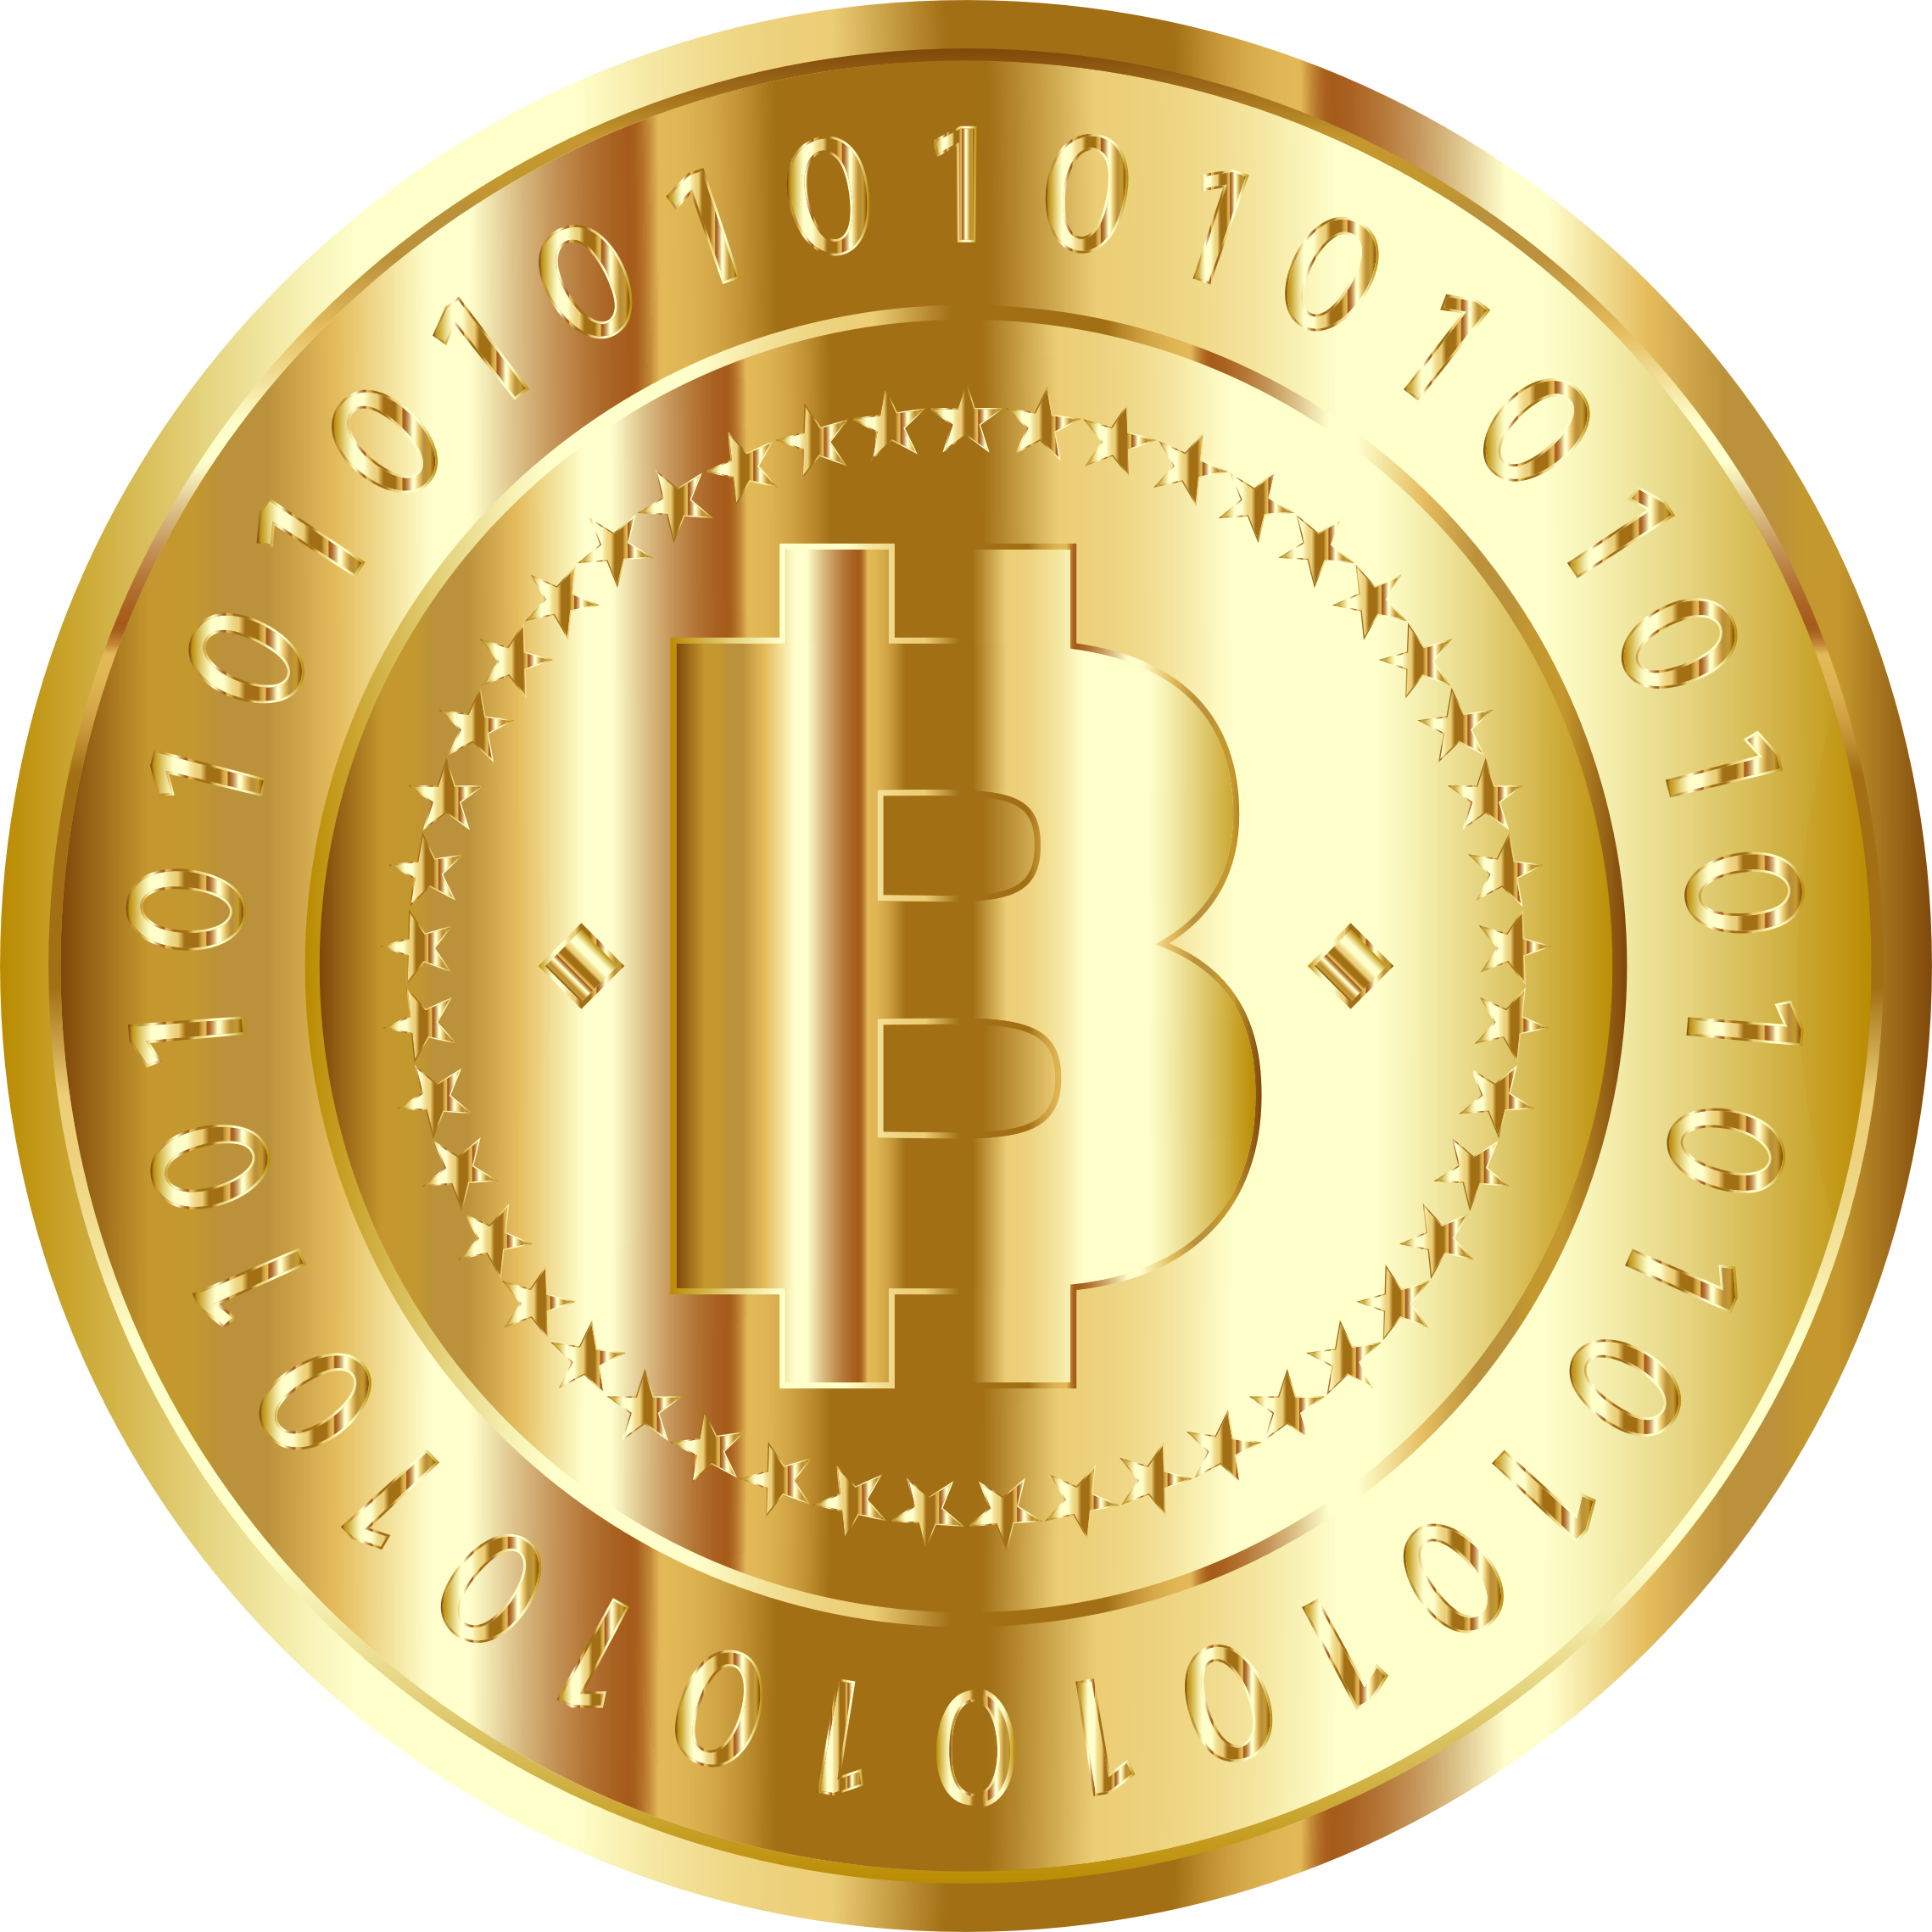 Gold Bitcoin by GDJ